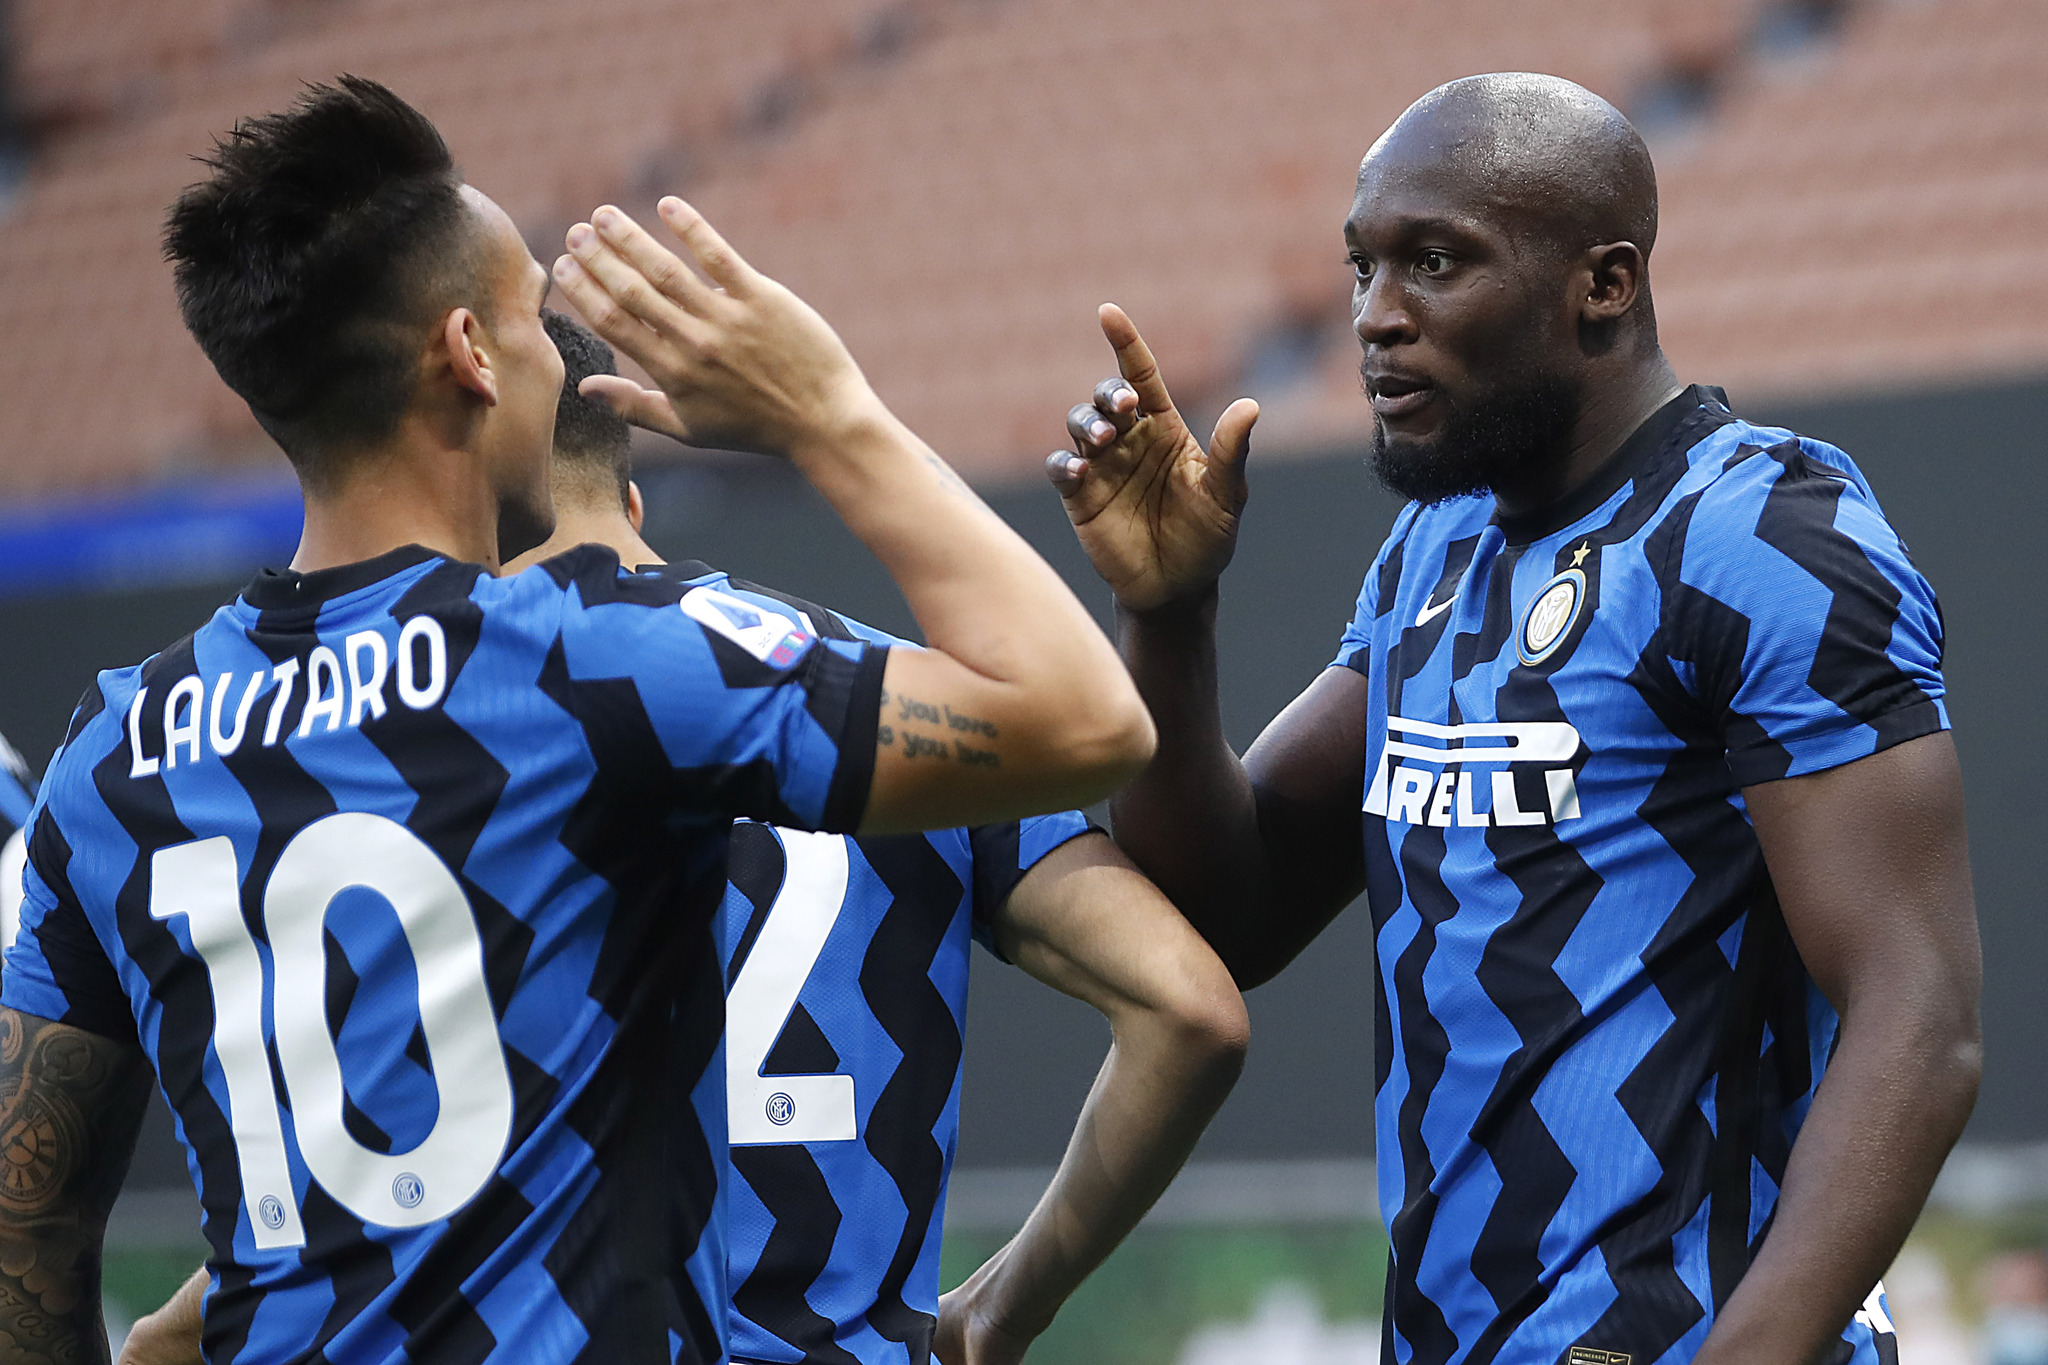 Lukaku (27: 20+7) and Lautaro (22: 14+8) have contributed 49 of Inter's 68 goals in Serie A this season. (AP Photo/Antonio Calanni)